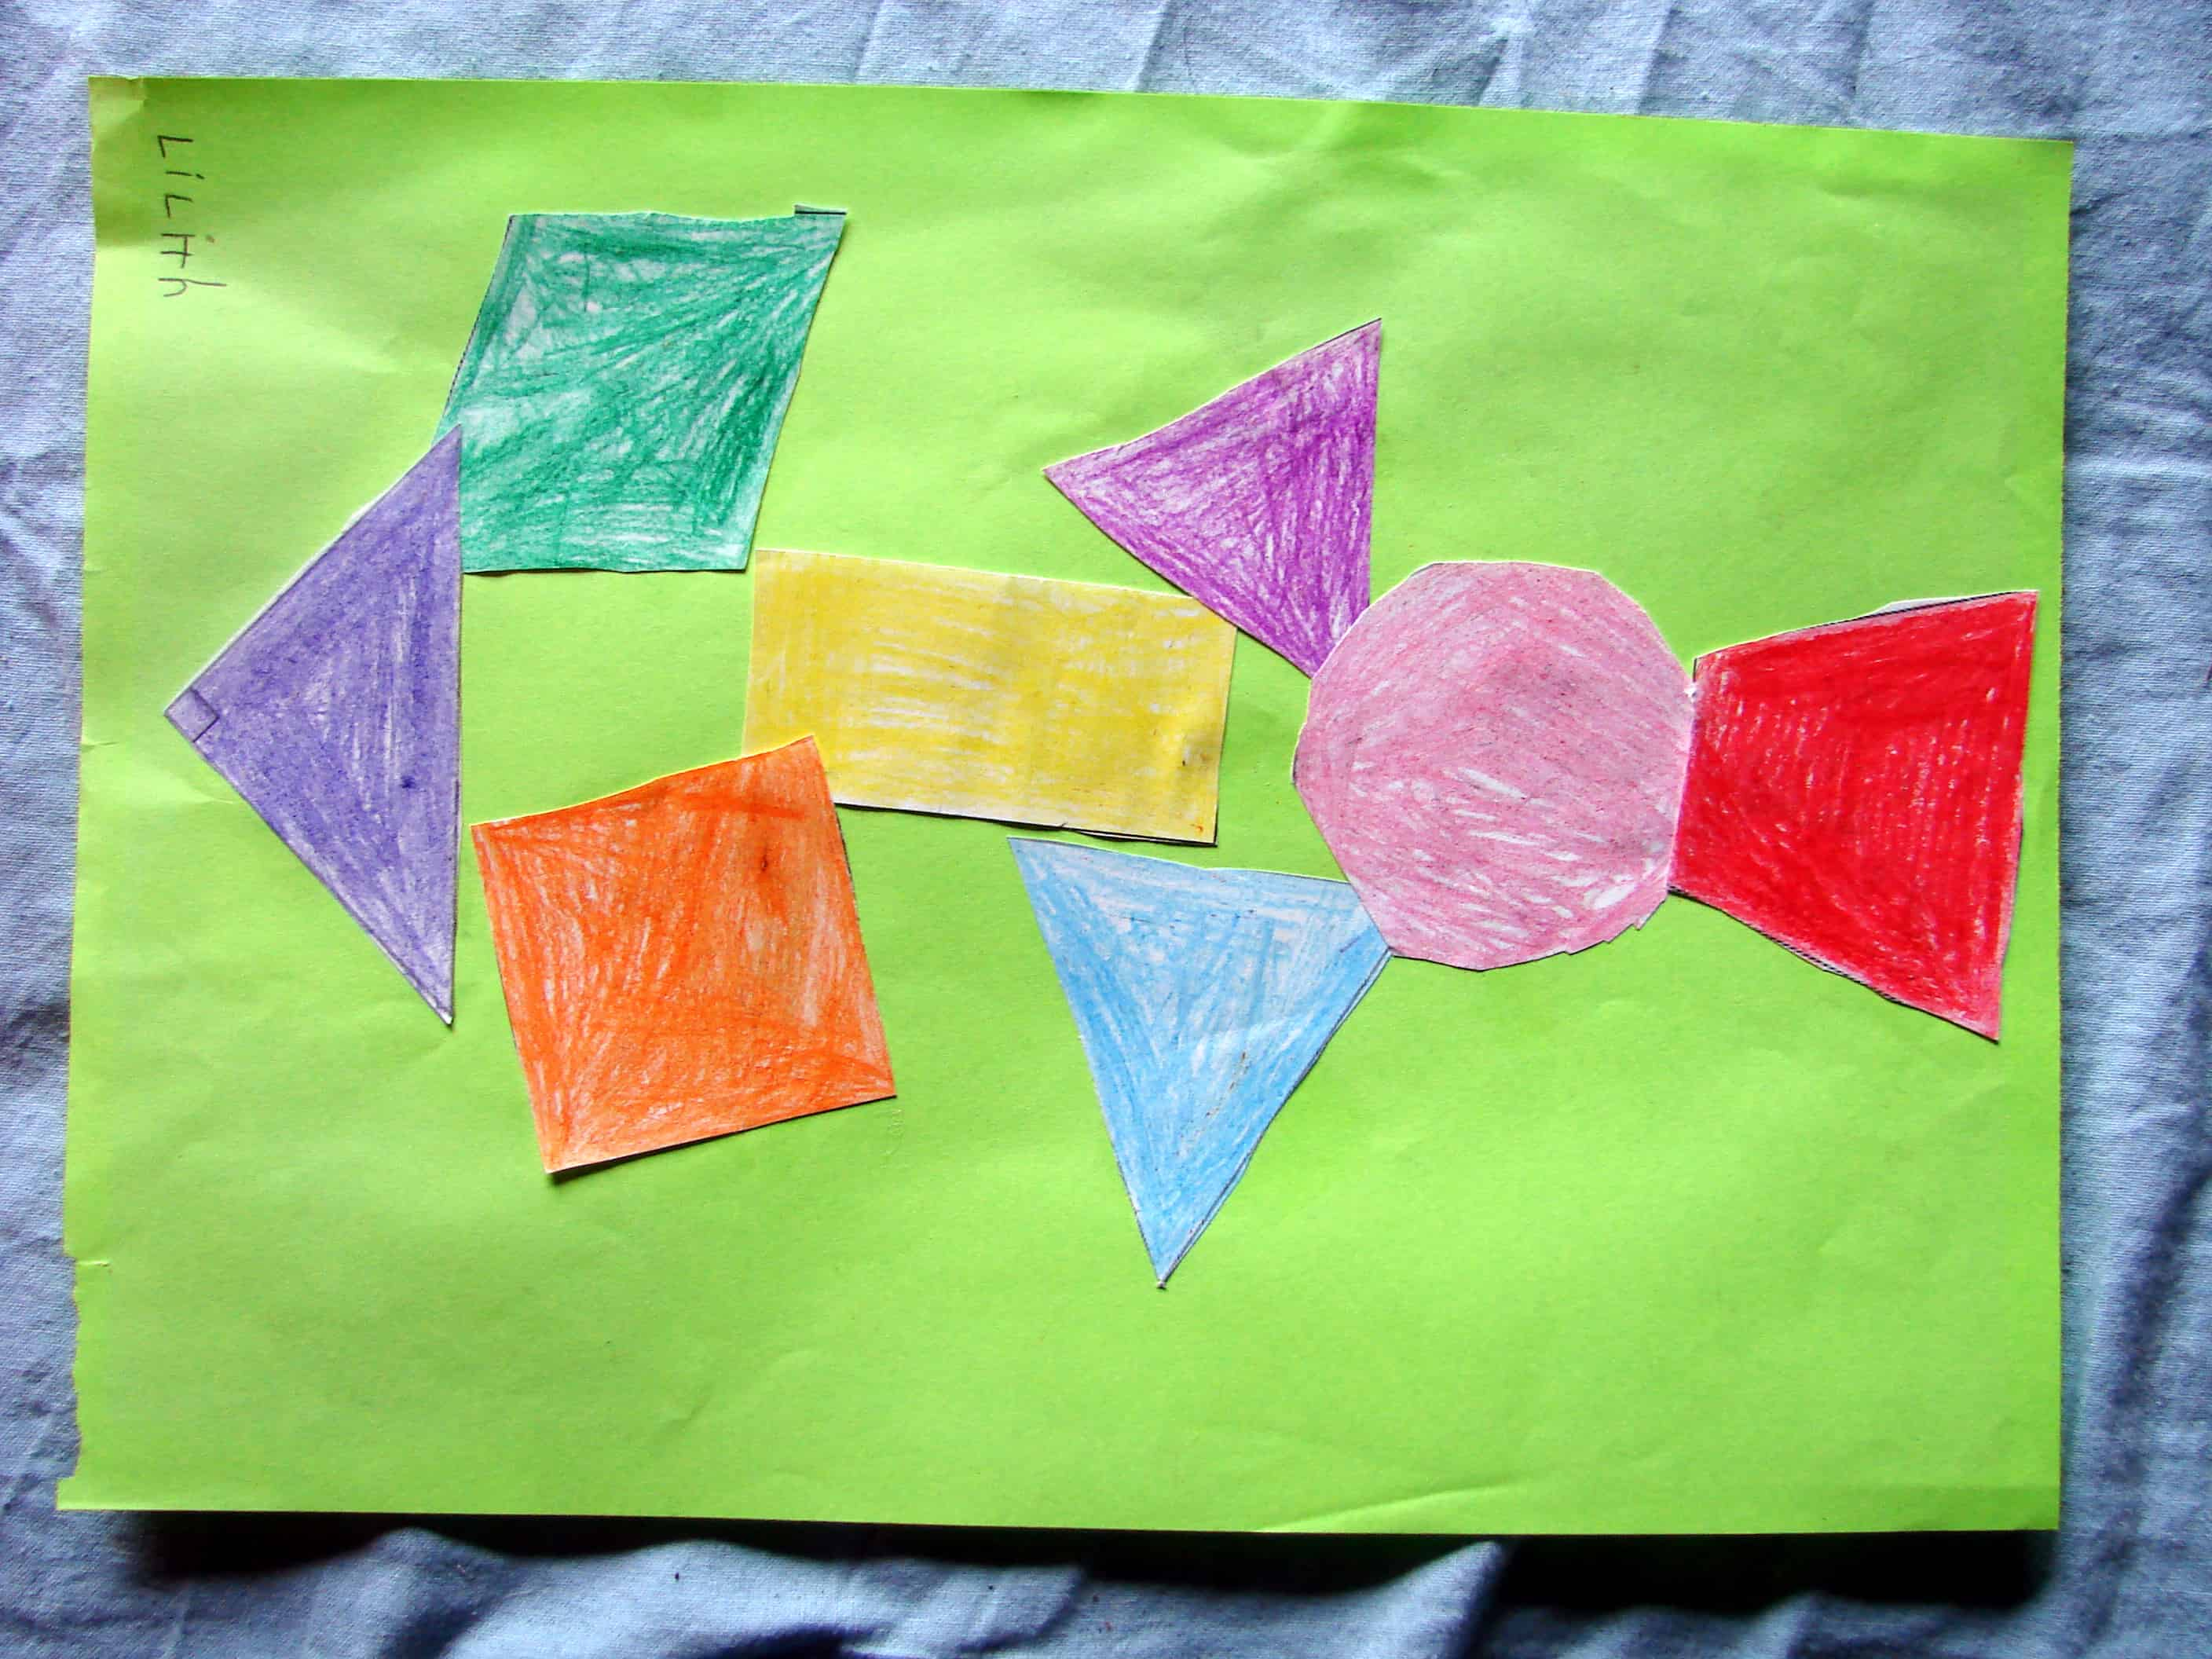 An artwork my daughter made pasting pieces of paper in geometrical shapes